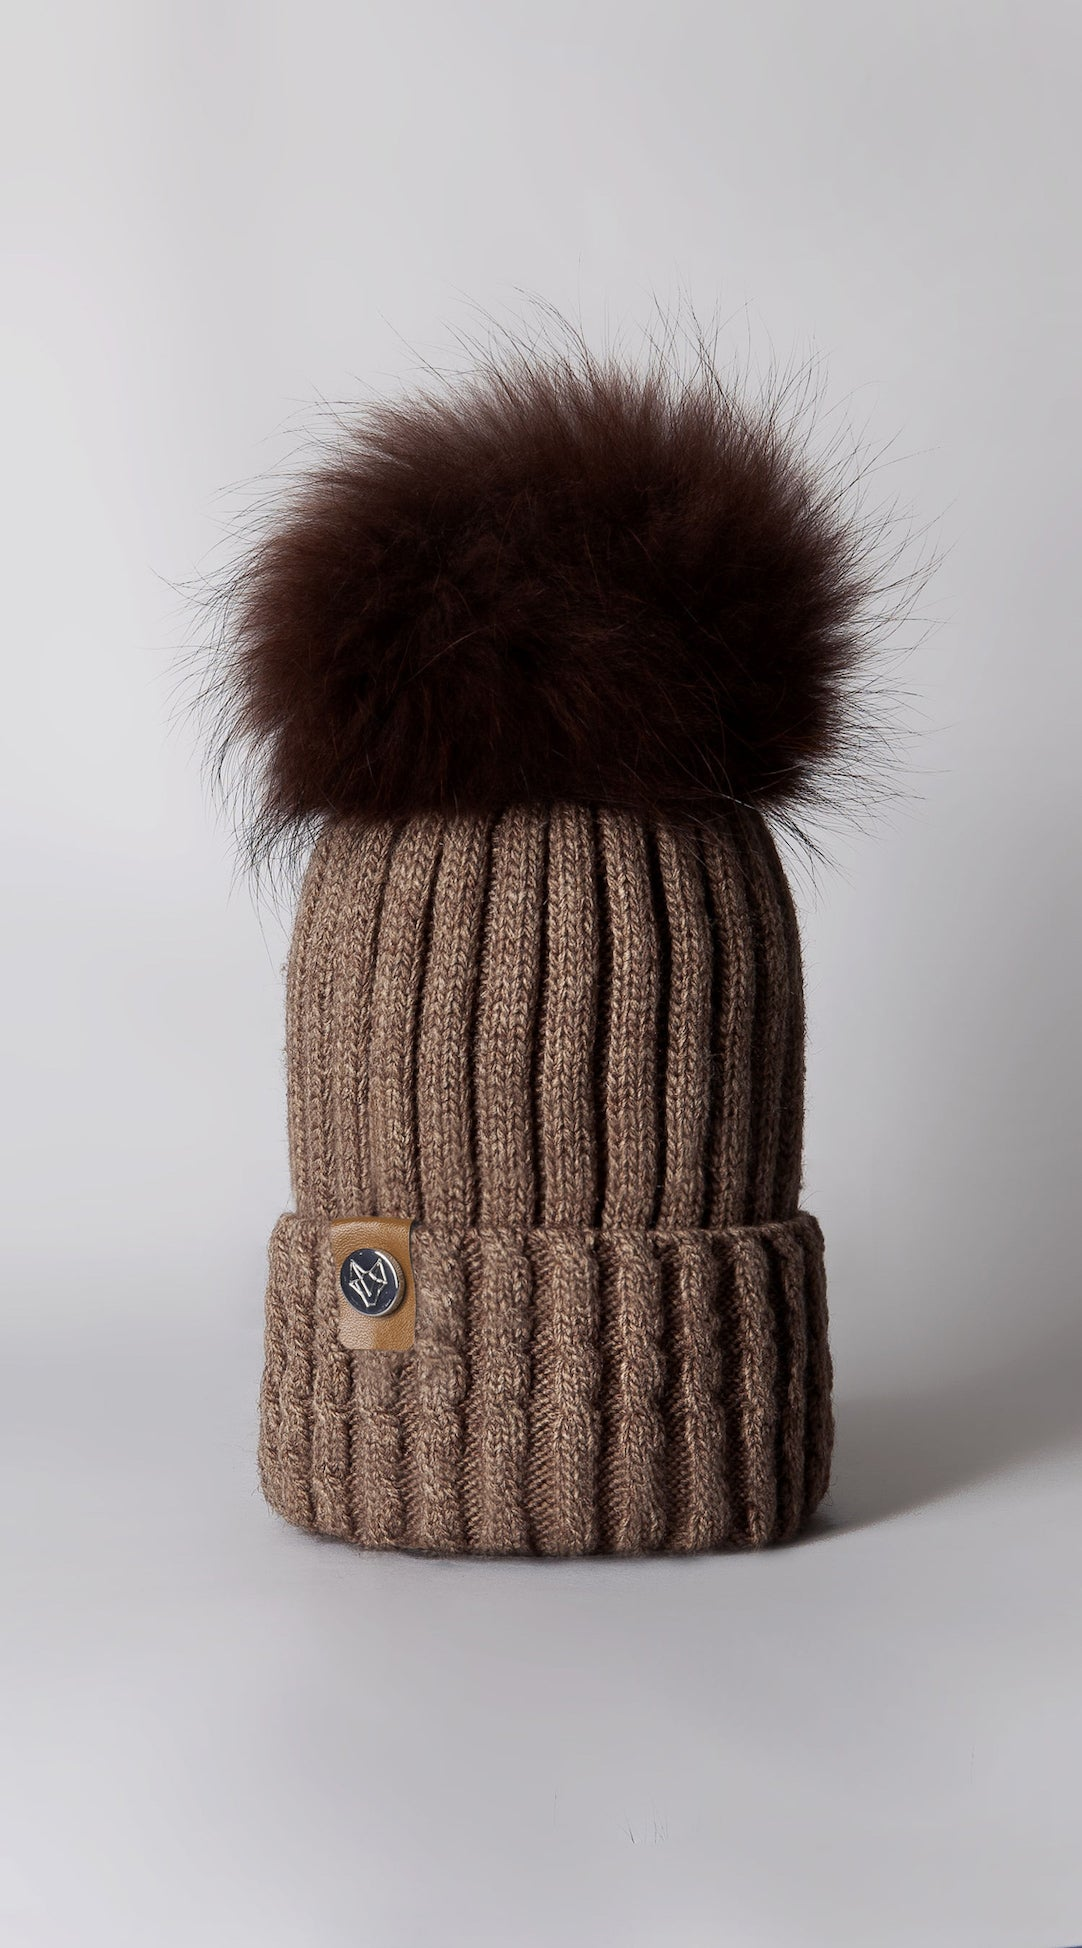 Boston Pom Pom Hat - Mocha